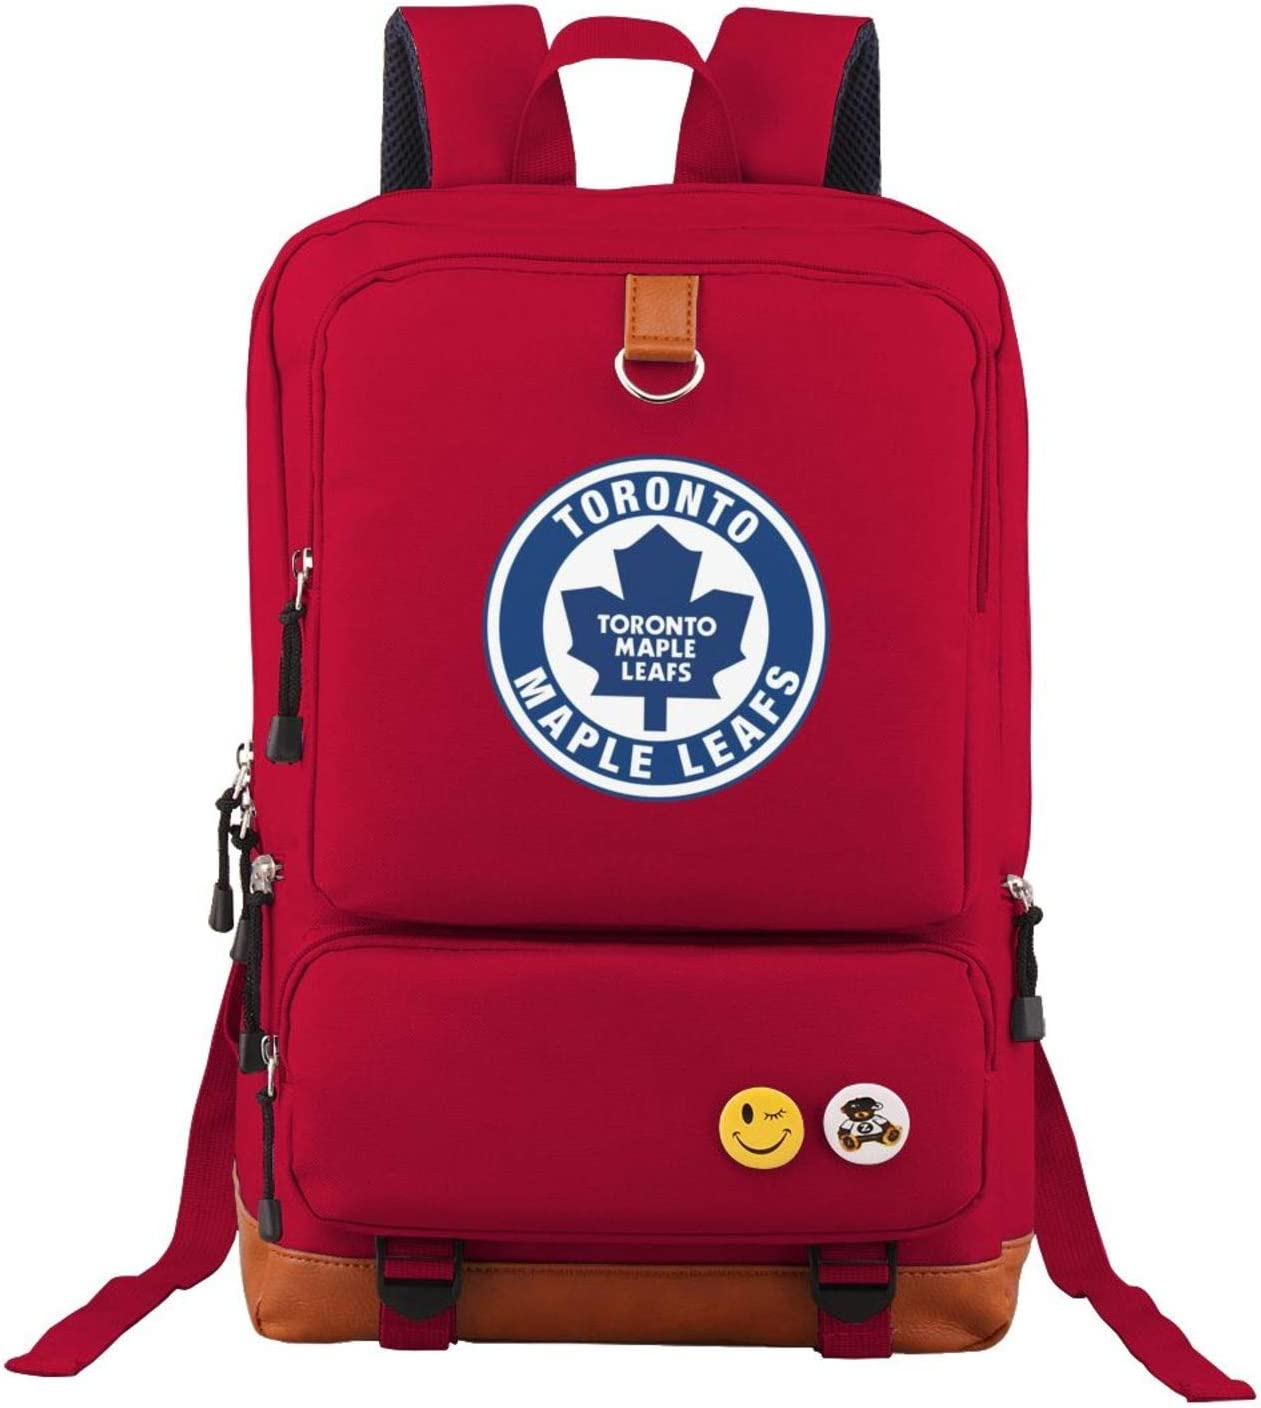 G-III Sports Toronto Maple Leafs Backpack for Middle High School College Student Oxford School Bag Laptop Rucksack Red